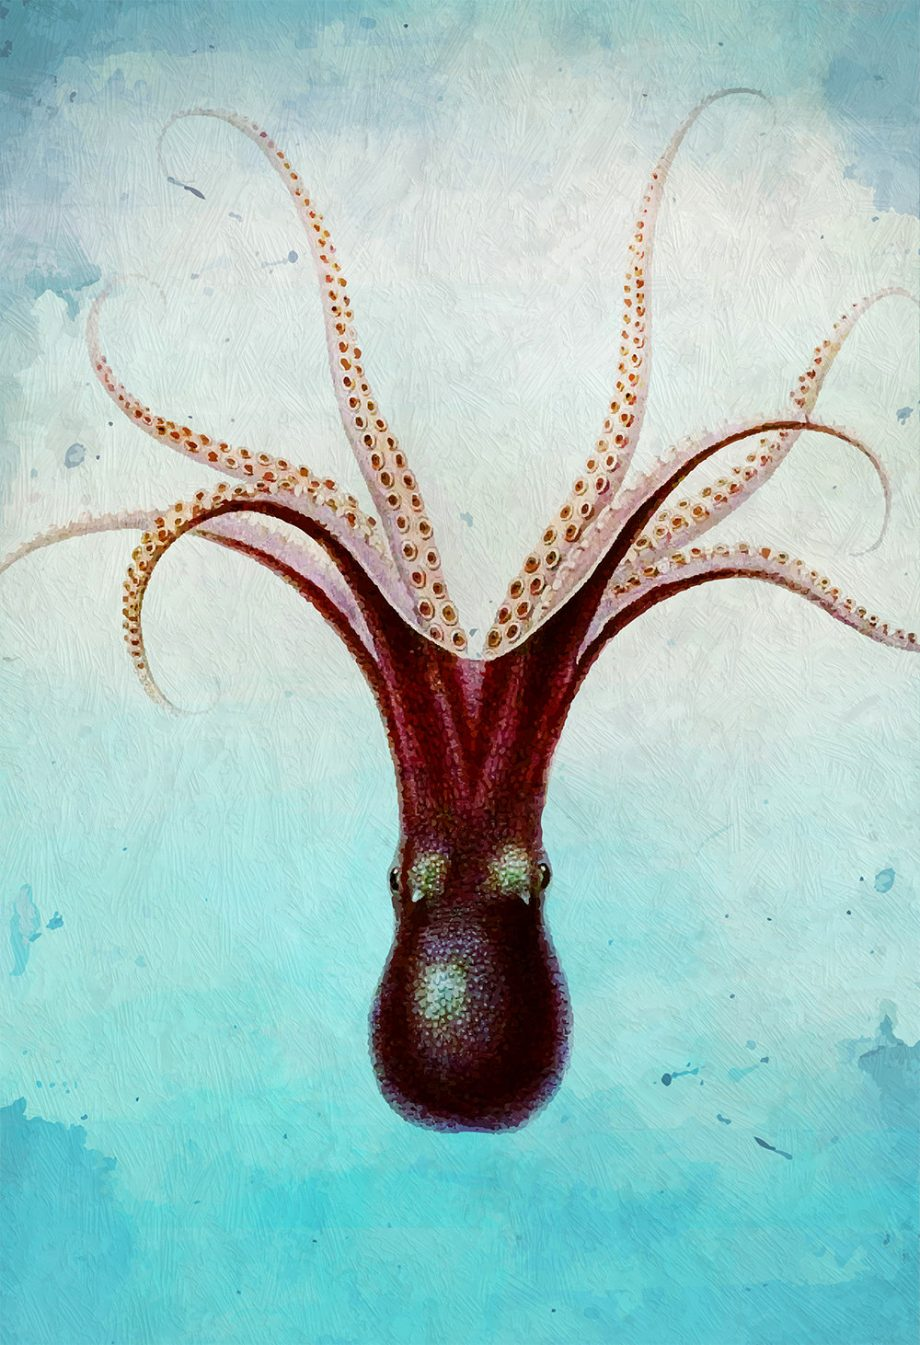 Octopus Art Print Sea Squid Vintage Nautical Decor Ocean Wall Art Giclee on Cotton Canvas and Paper Canvas